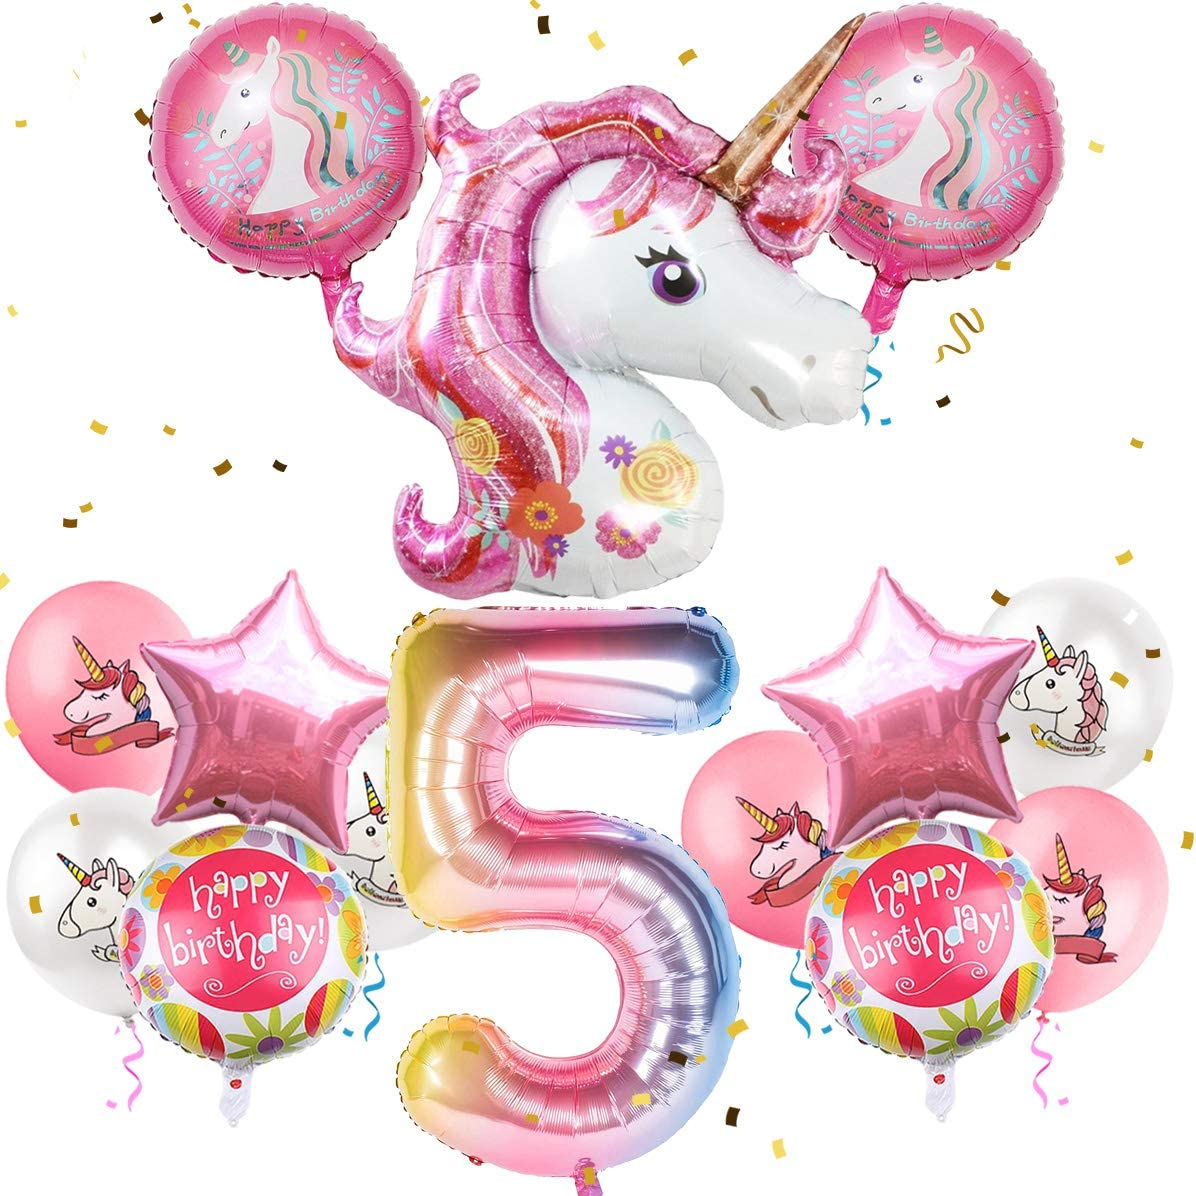 MOVINPE Unicorn Balloons Birthday Party Decorations for Girls 5th Party, 43